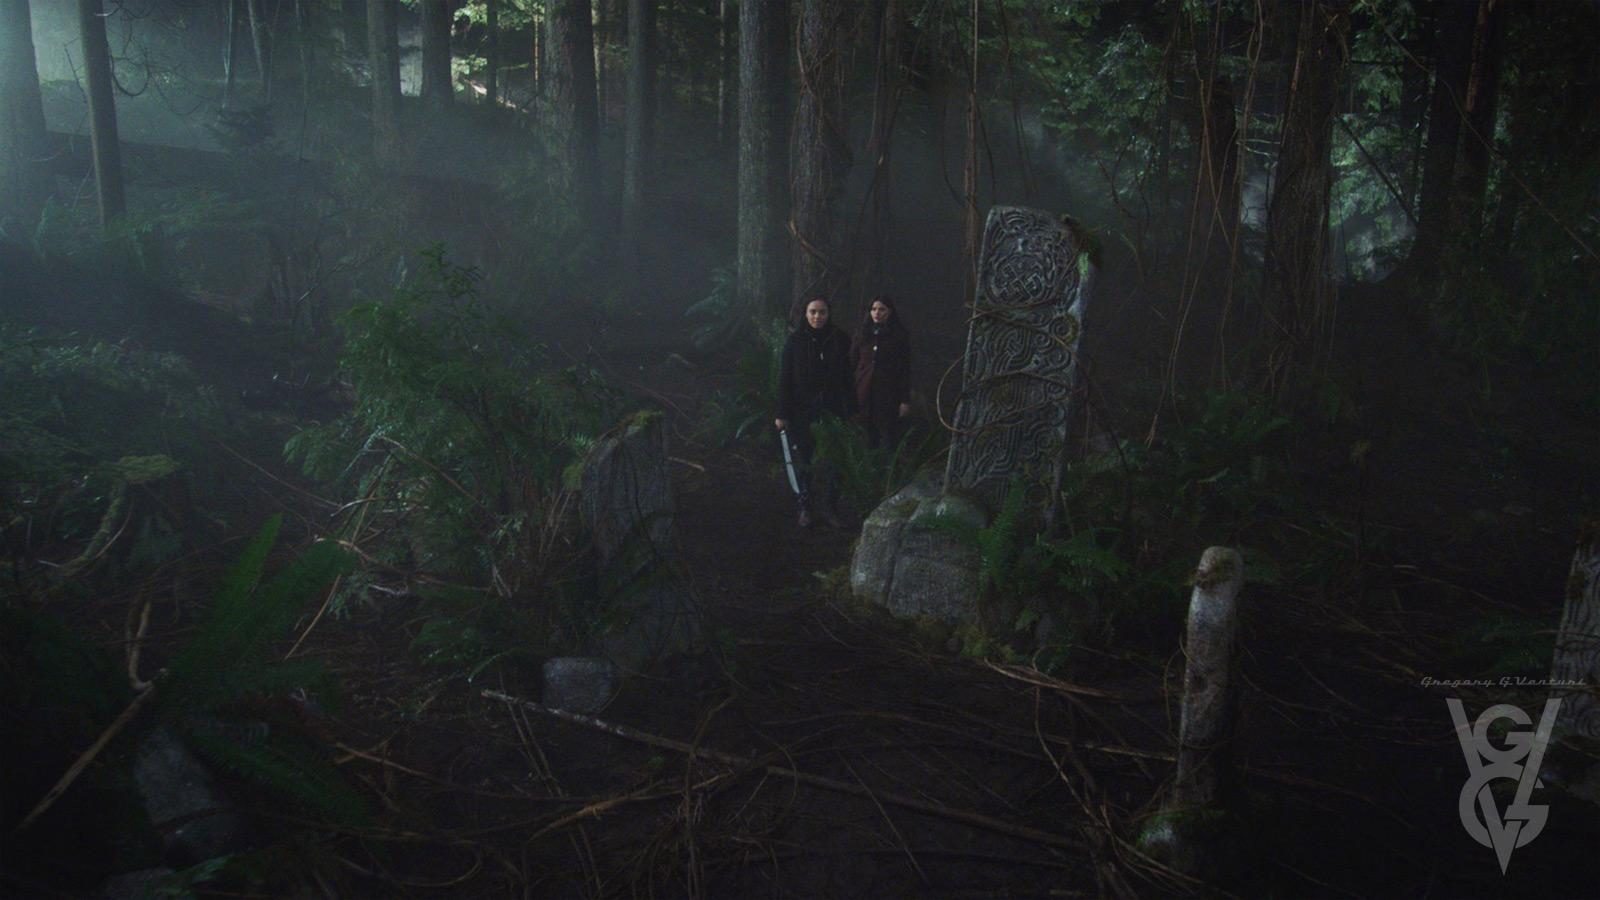 CHARMED: S1 - CELTIC STONE CLEARING - DRESSED LOCATION - SCREEN STILL